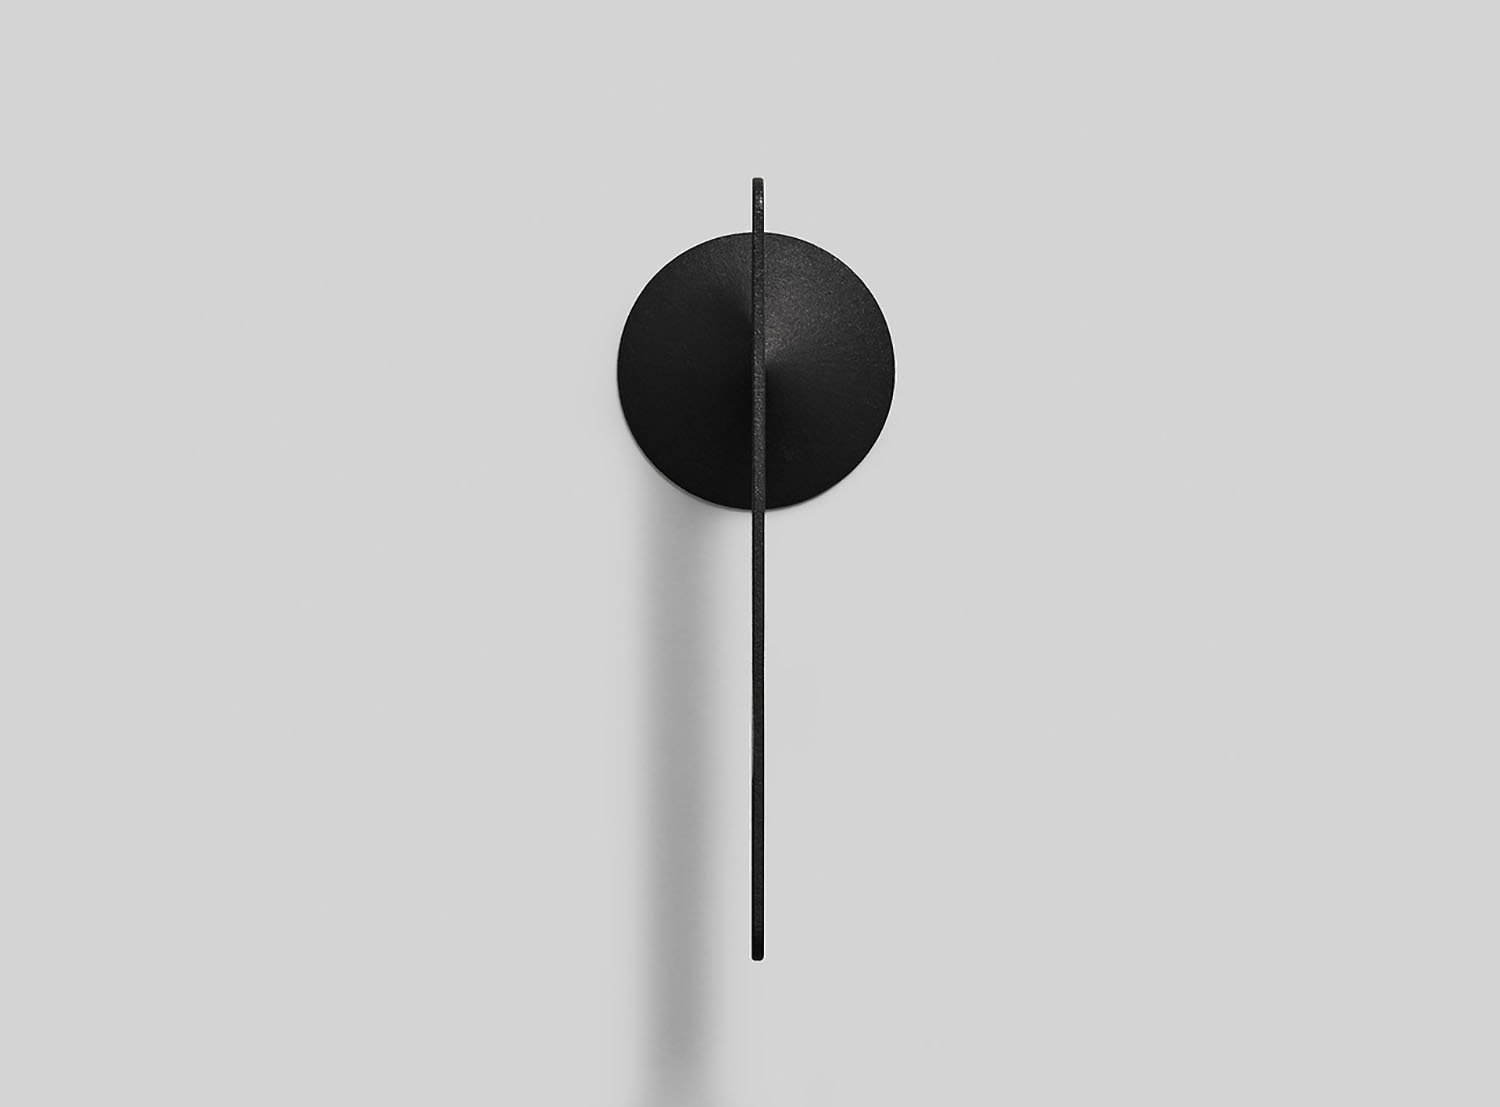 iGNANT_Design_Geometric_Candle_Snuffers_OTHR_2